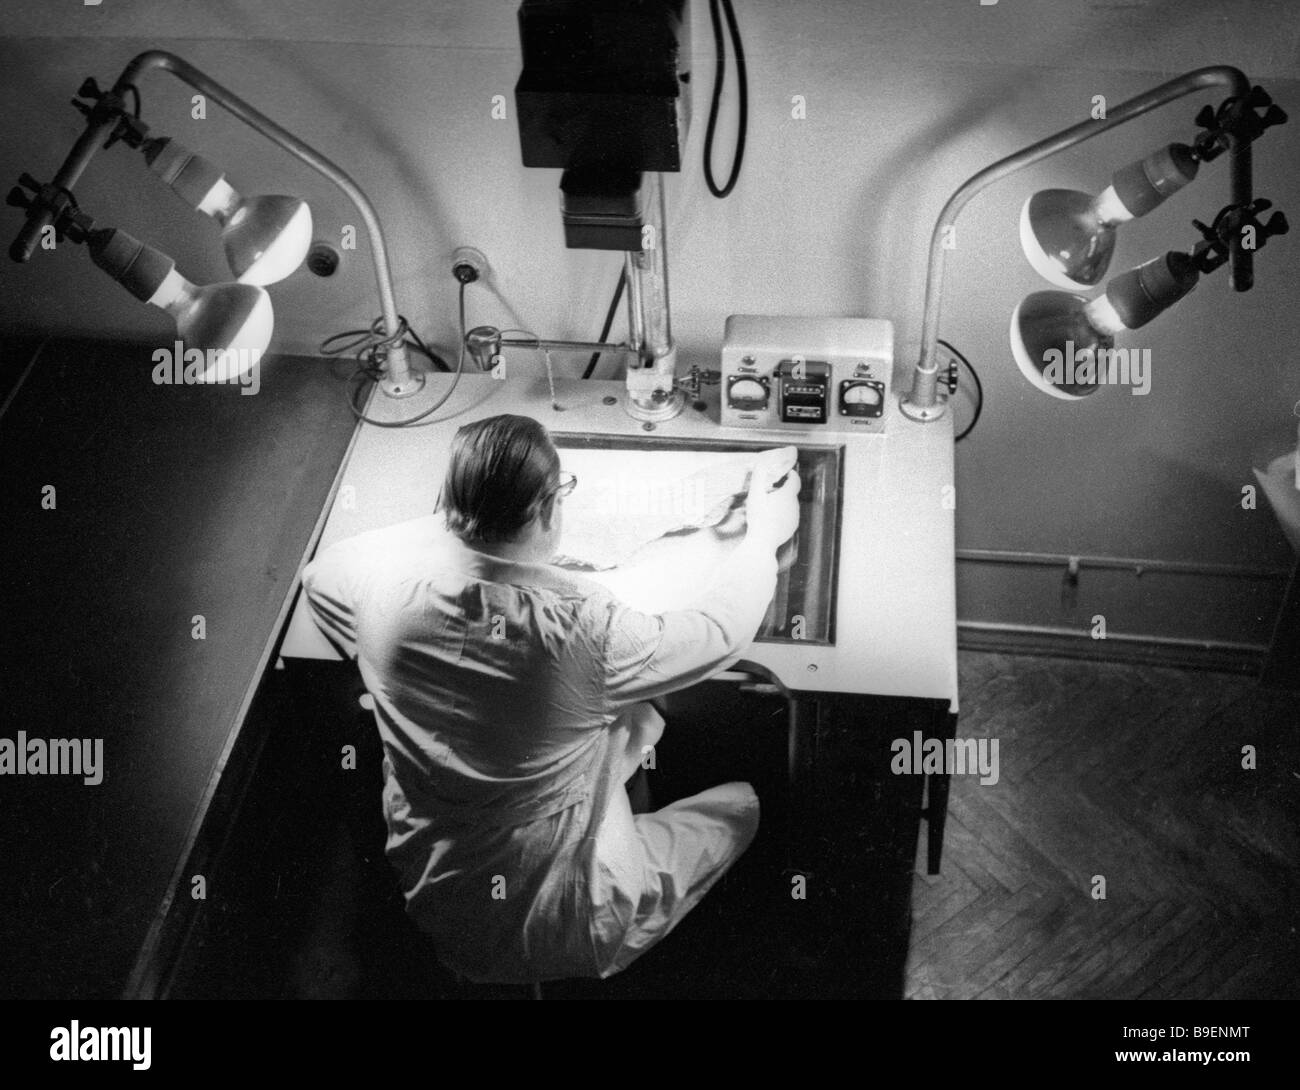 Laboratory Manuals Stock Photos Images Electrical Wiring Lab Manual Assistant Of The Technical Trace And Ballistic Studies Kiev Forensic Research Institute